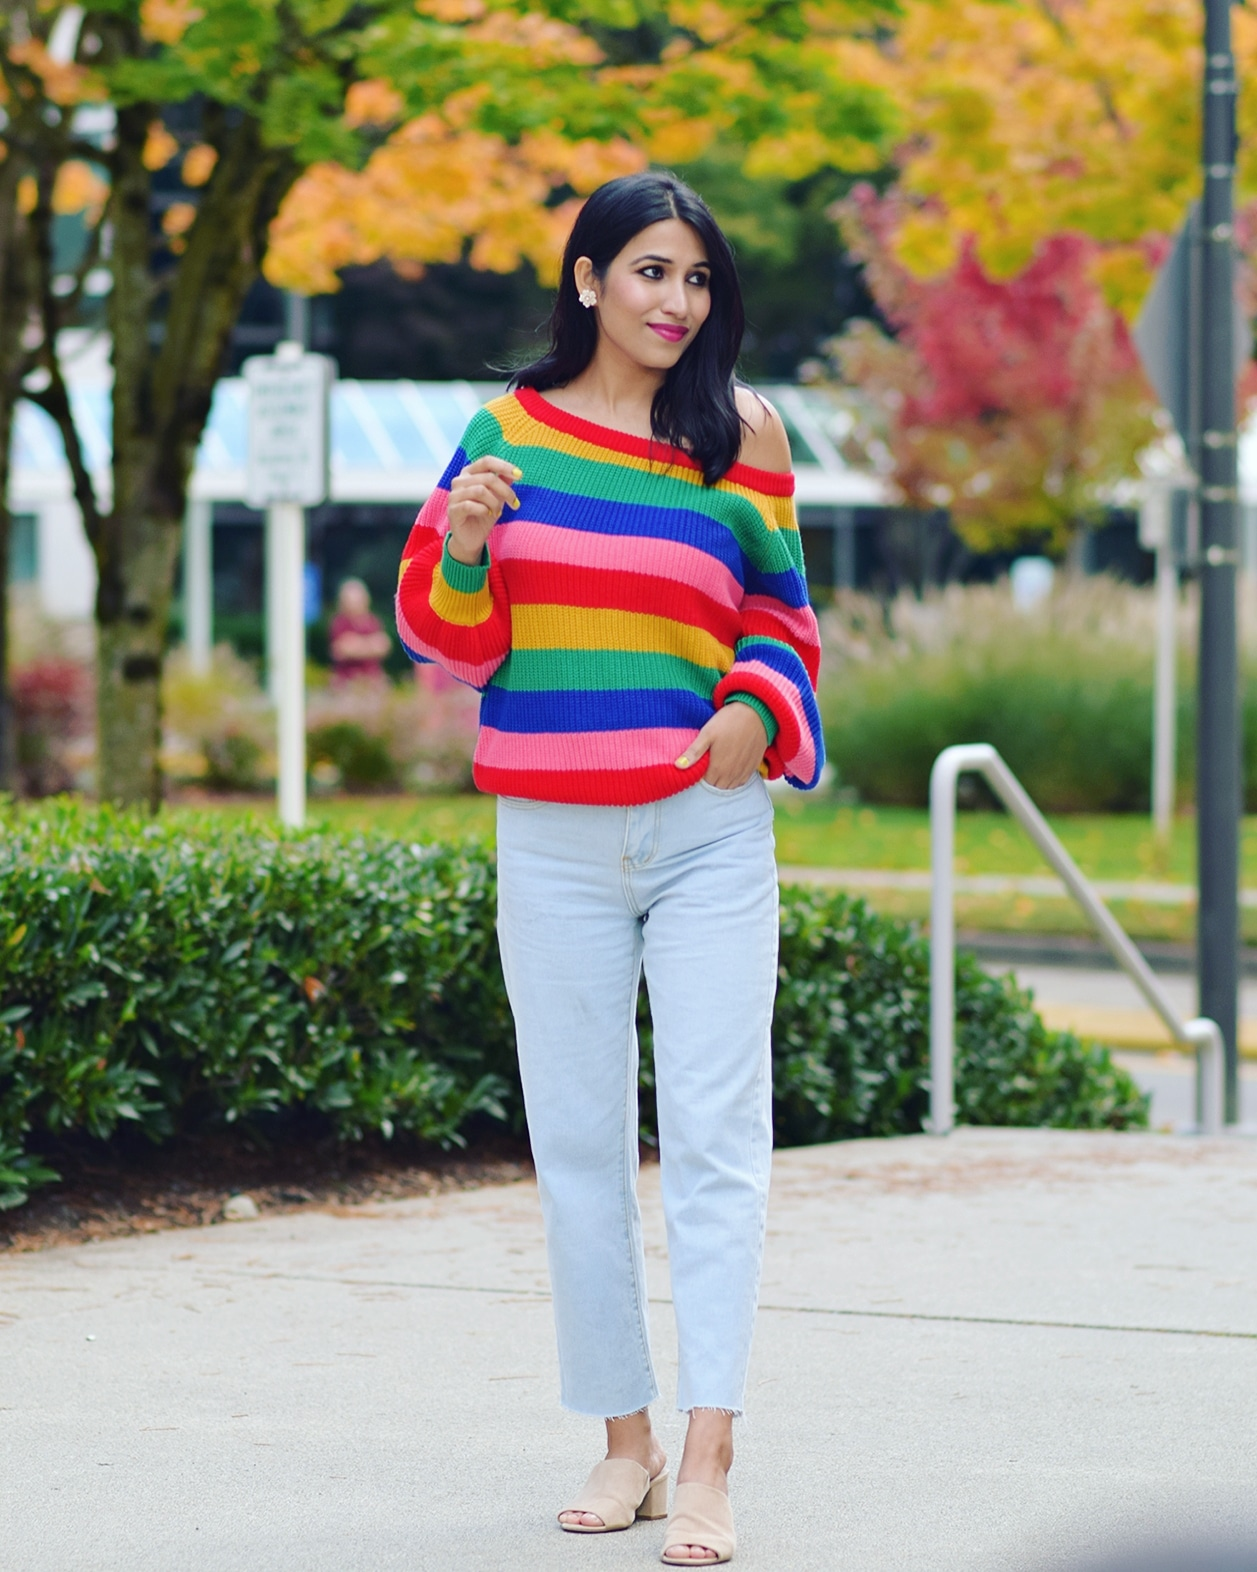 Fall Outfit Ideas For Everyday Looks| SHEIN